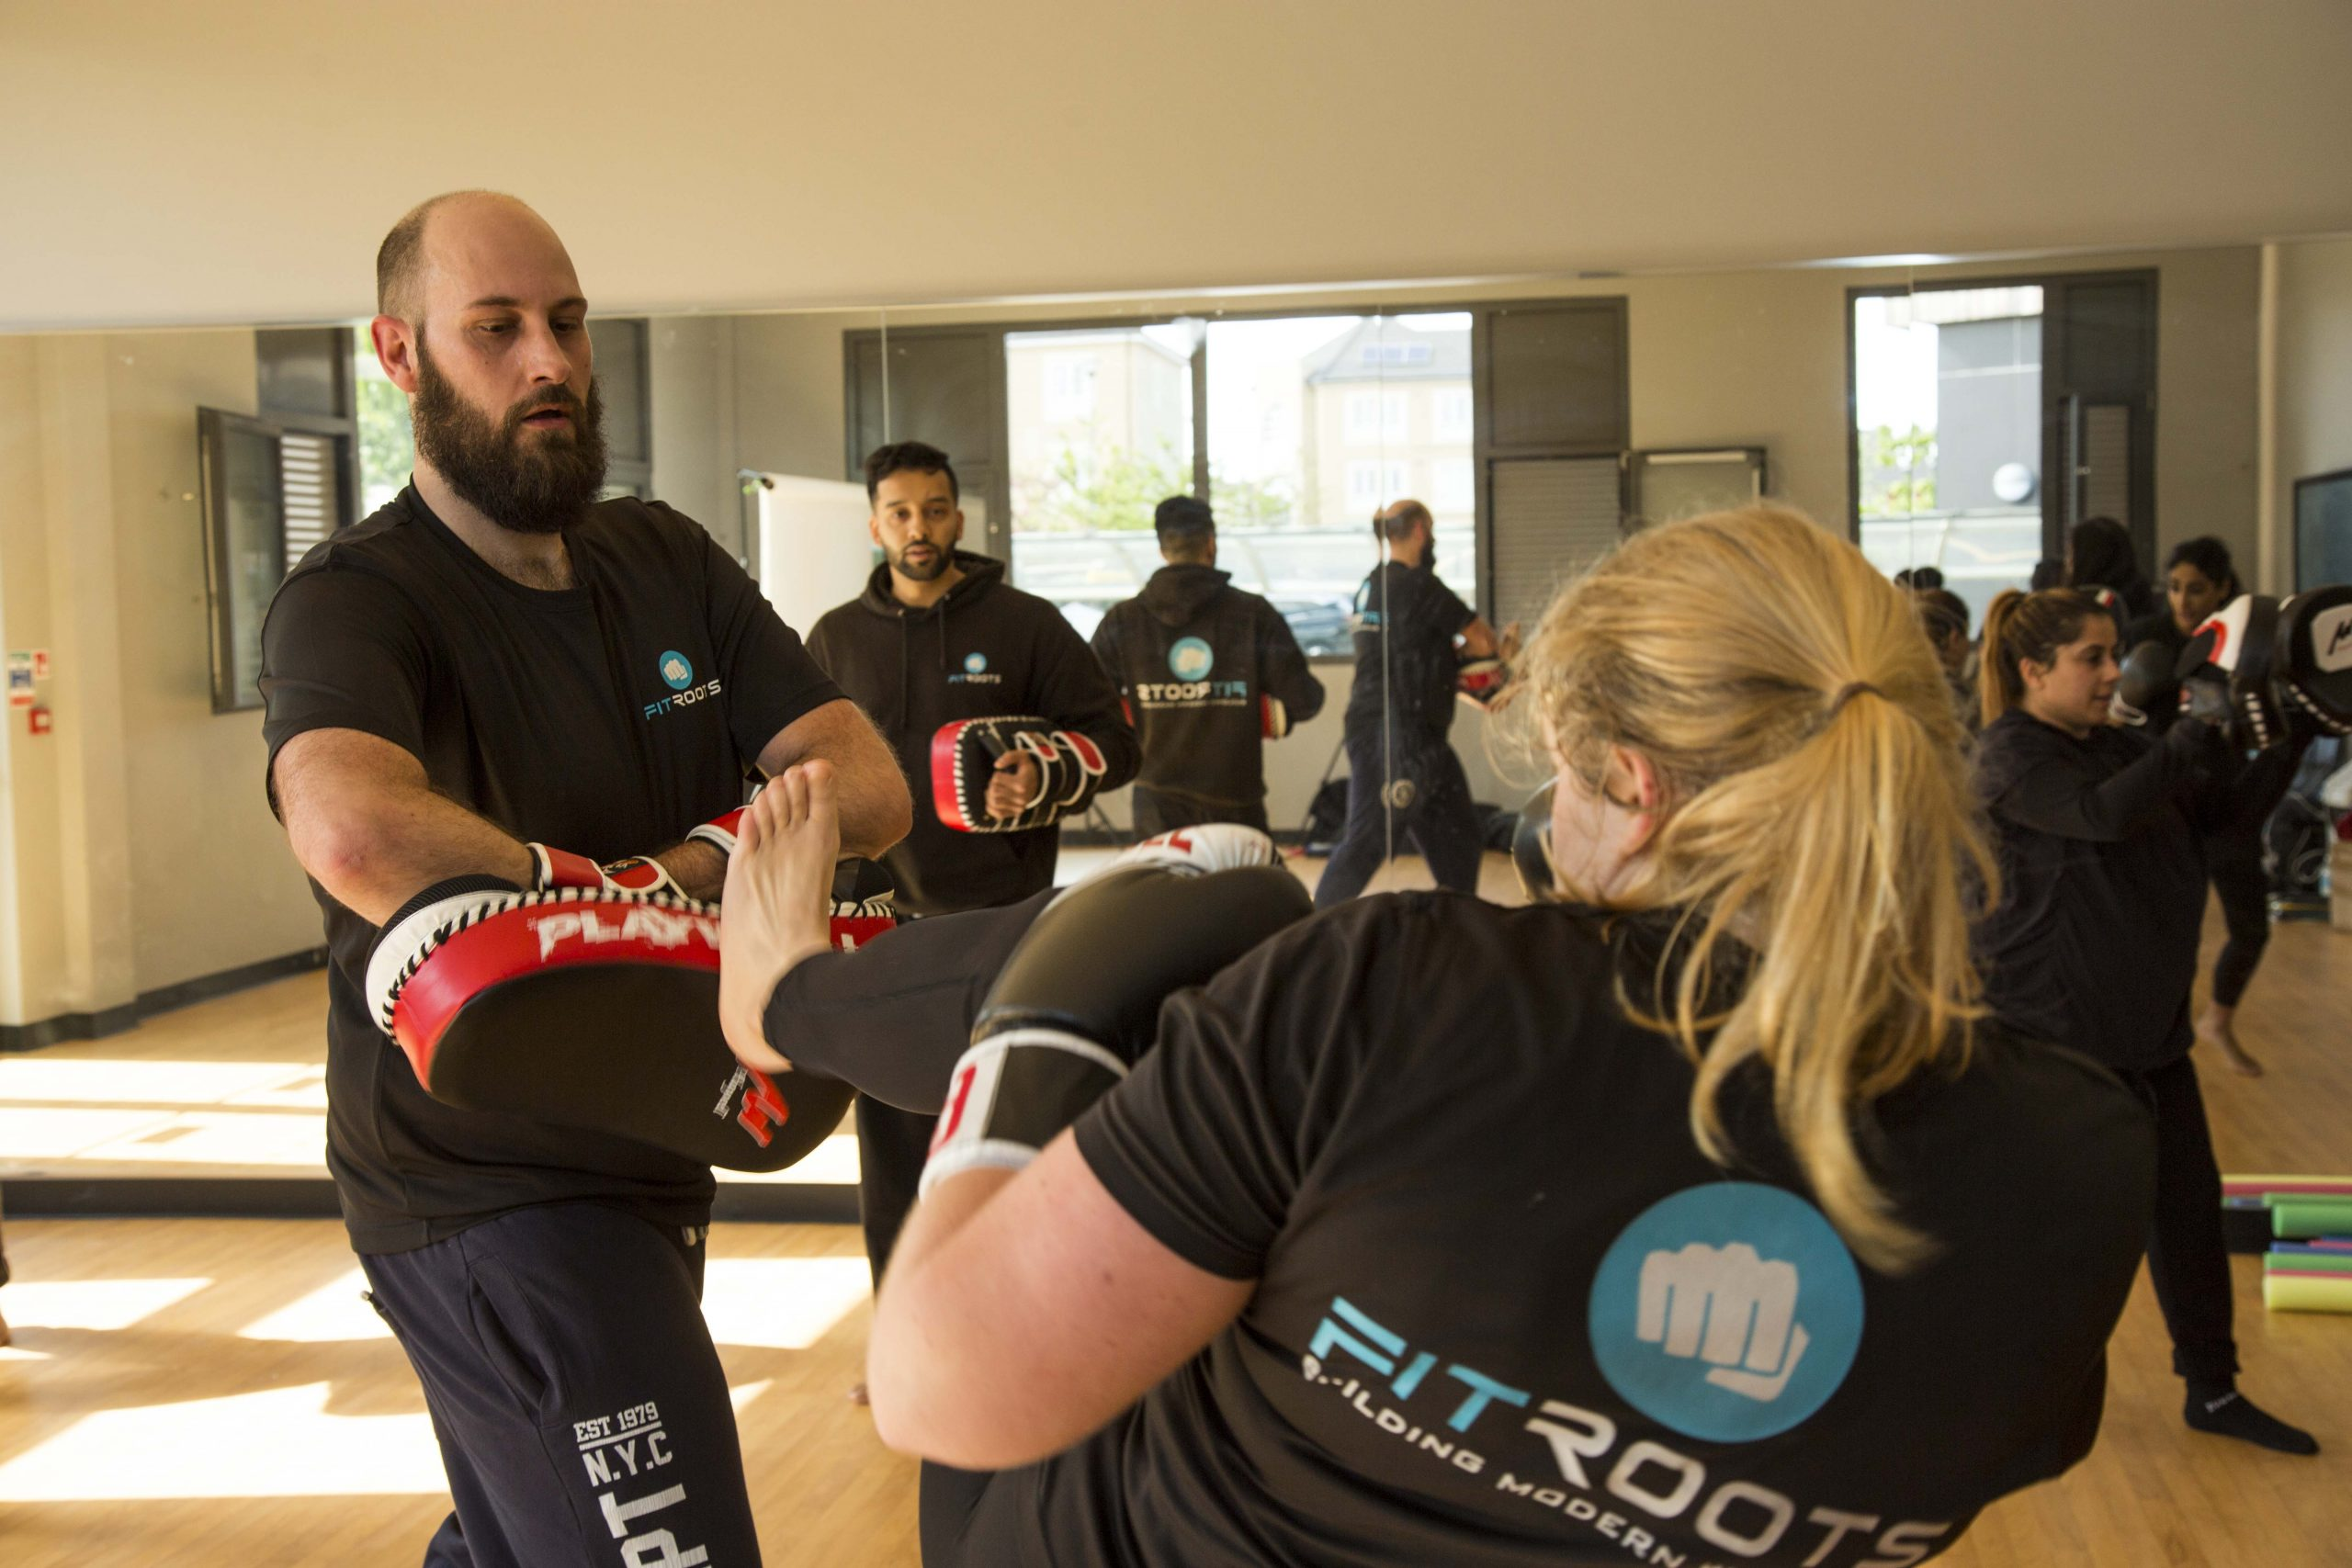 Adult's Kickboxing and Martial Arts Class at FitRoots